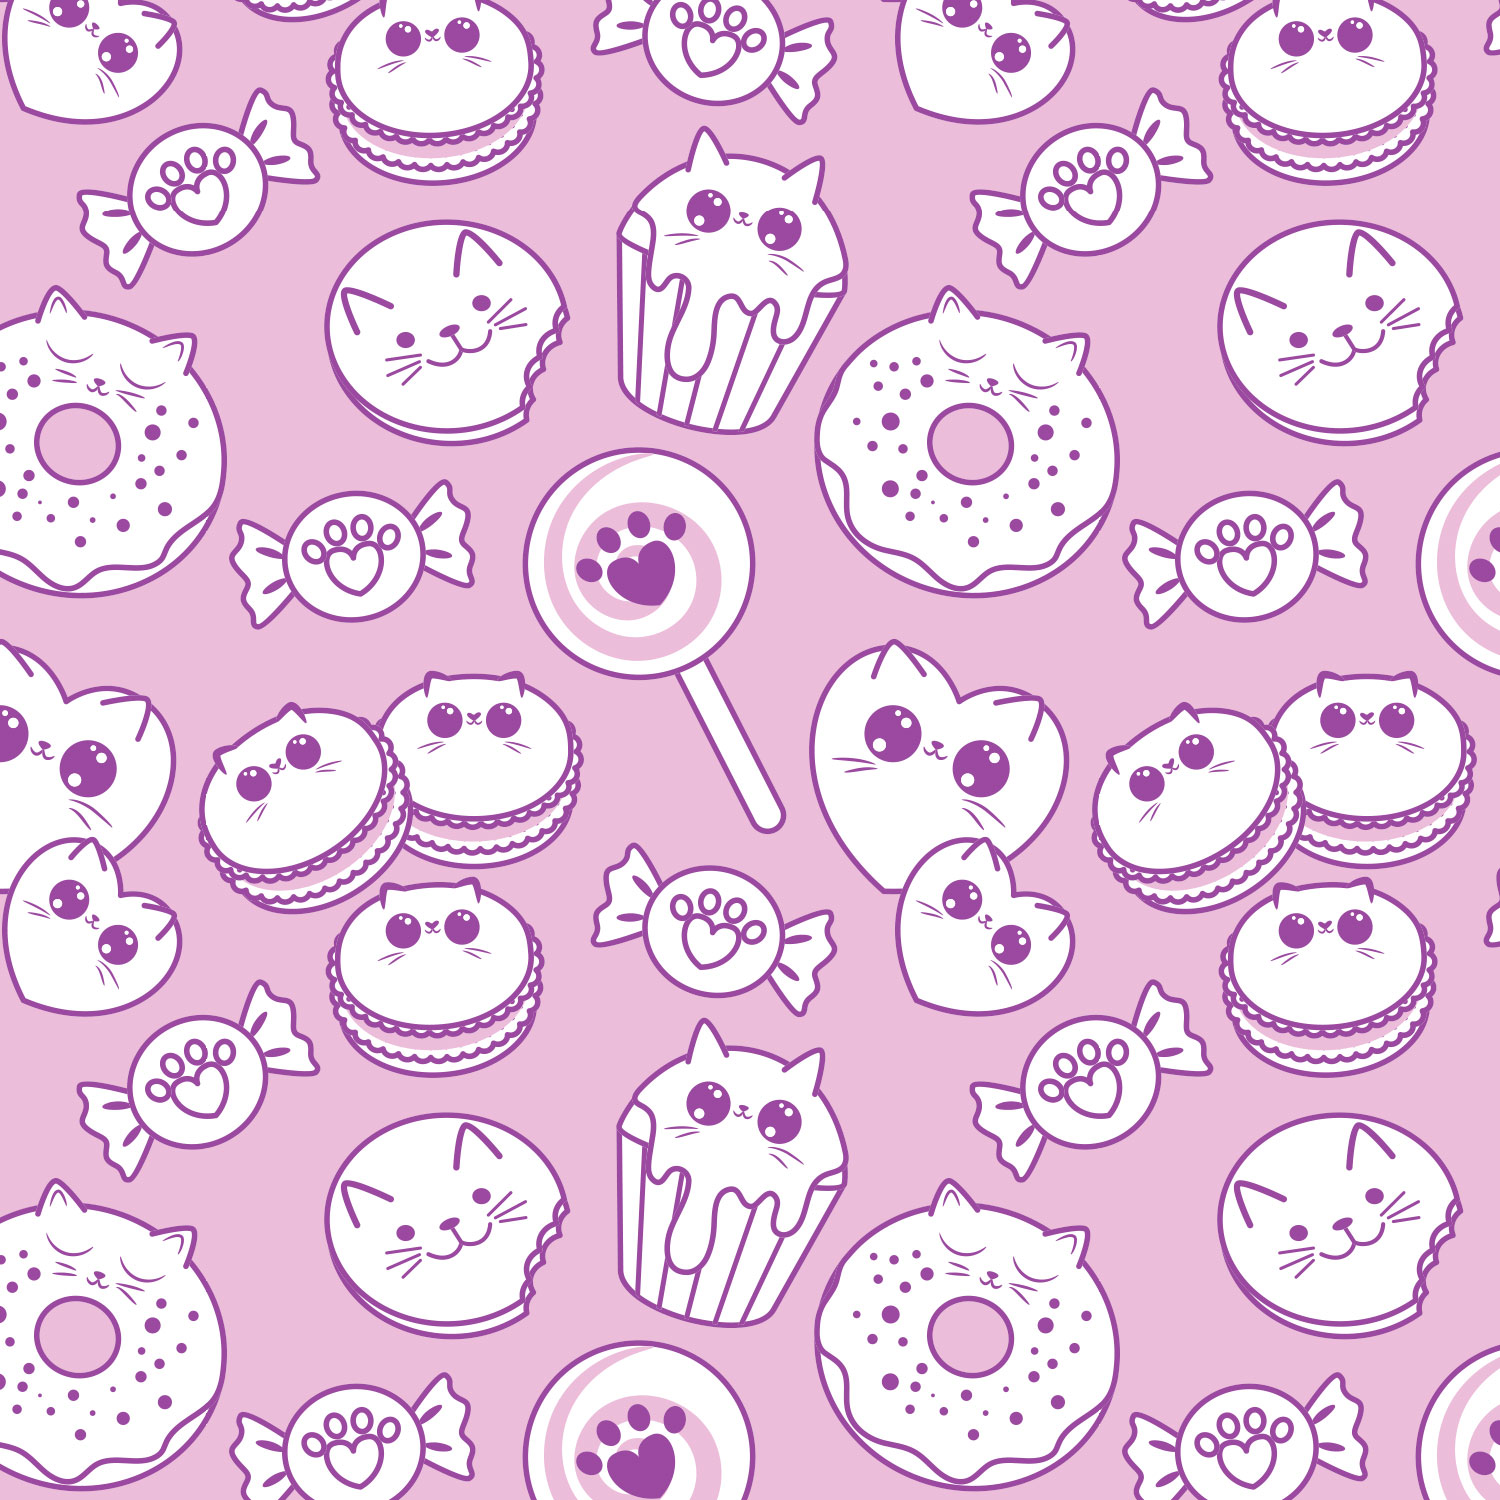 Mona Daly Illustration sweets cupcakes donuts pattern